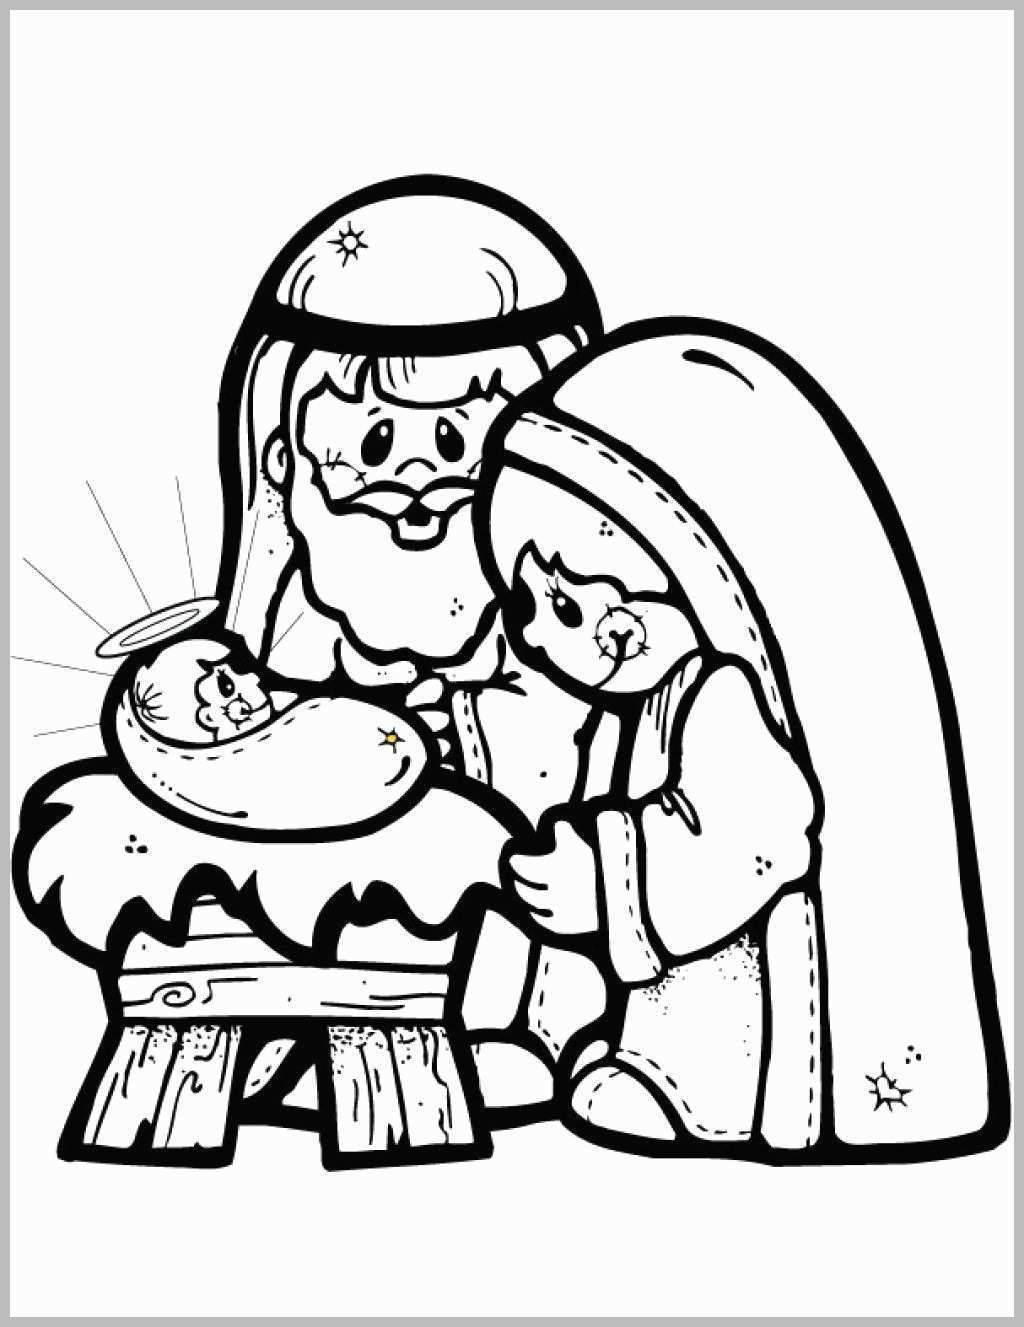 Christmas Manger Drawings | Free download on ClipArtMag